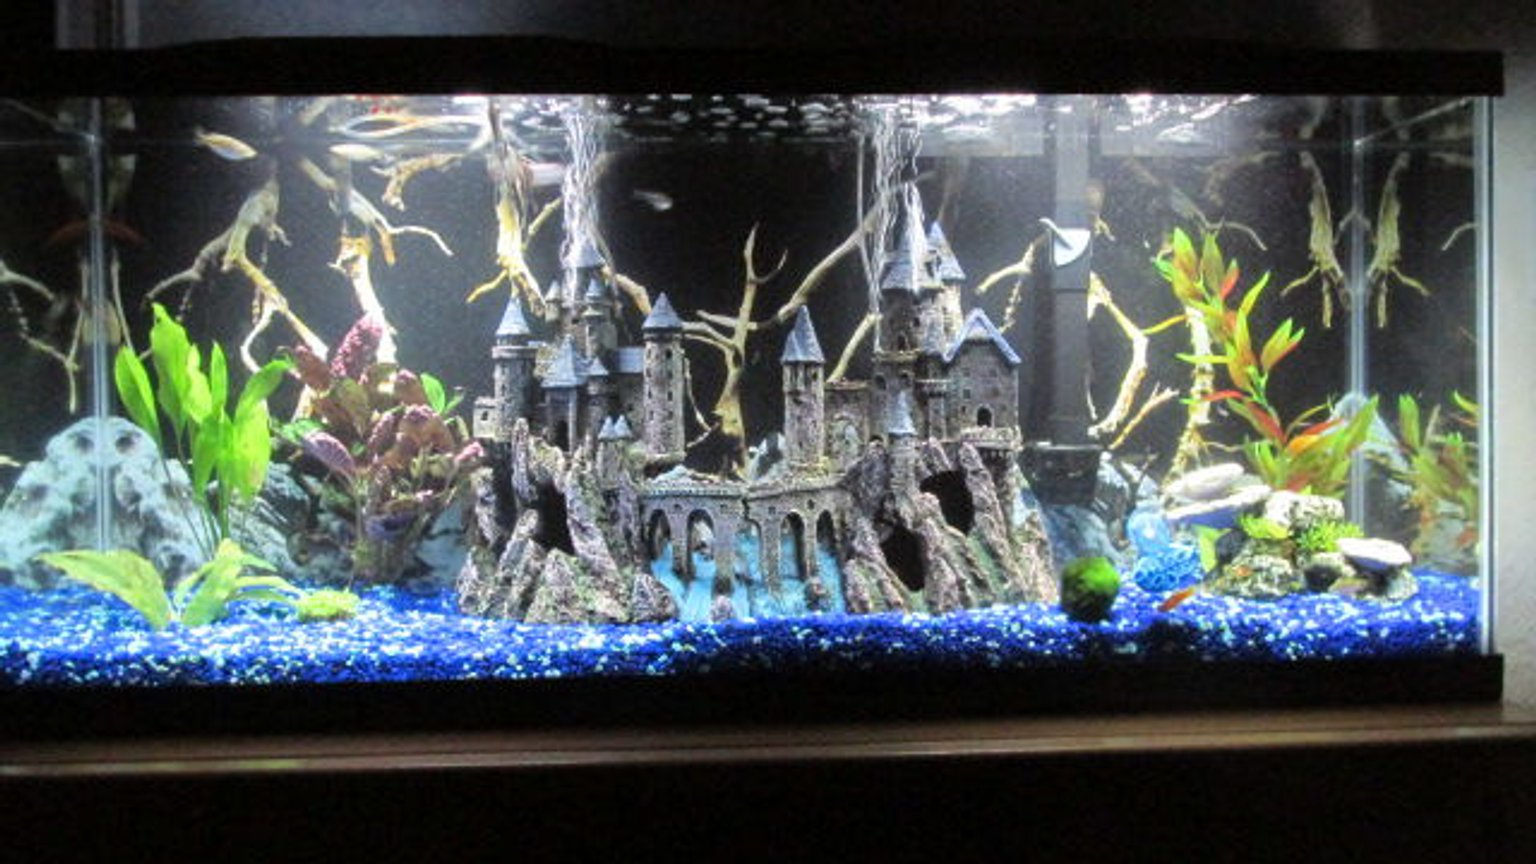 60 gallons freshwater fish tank (mostly fish and non-living decorations) - Castle community tank.